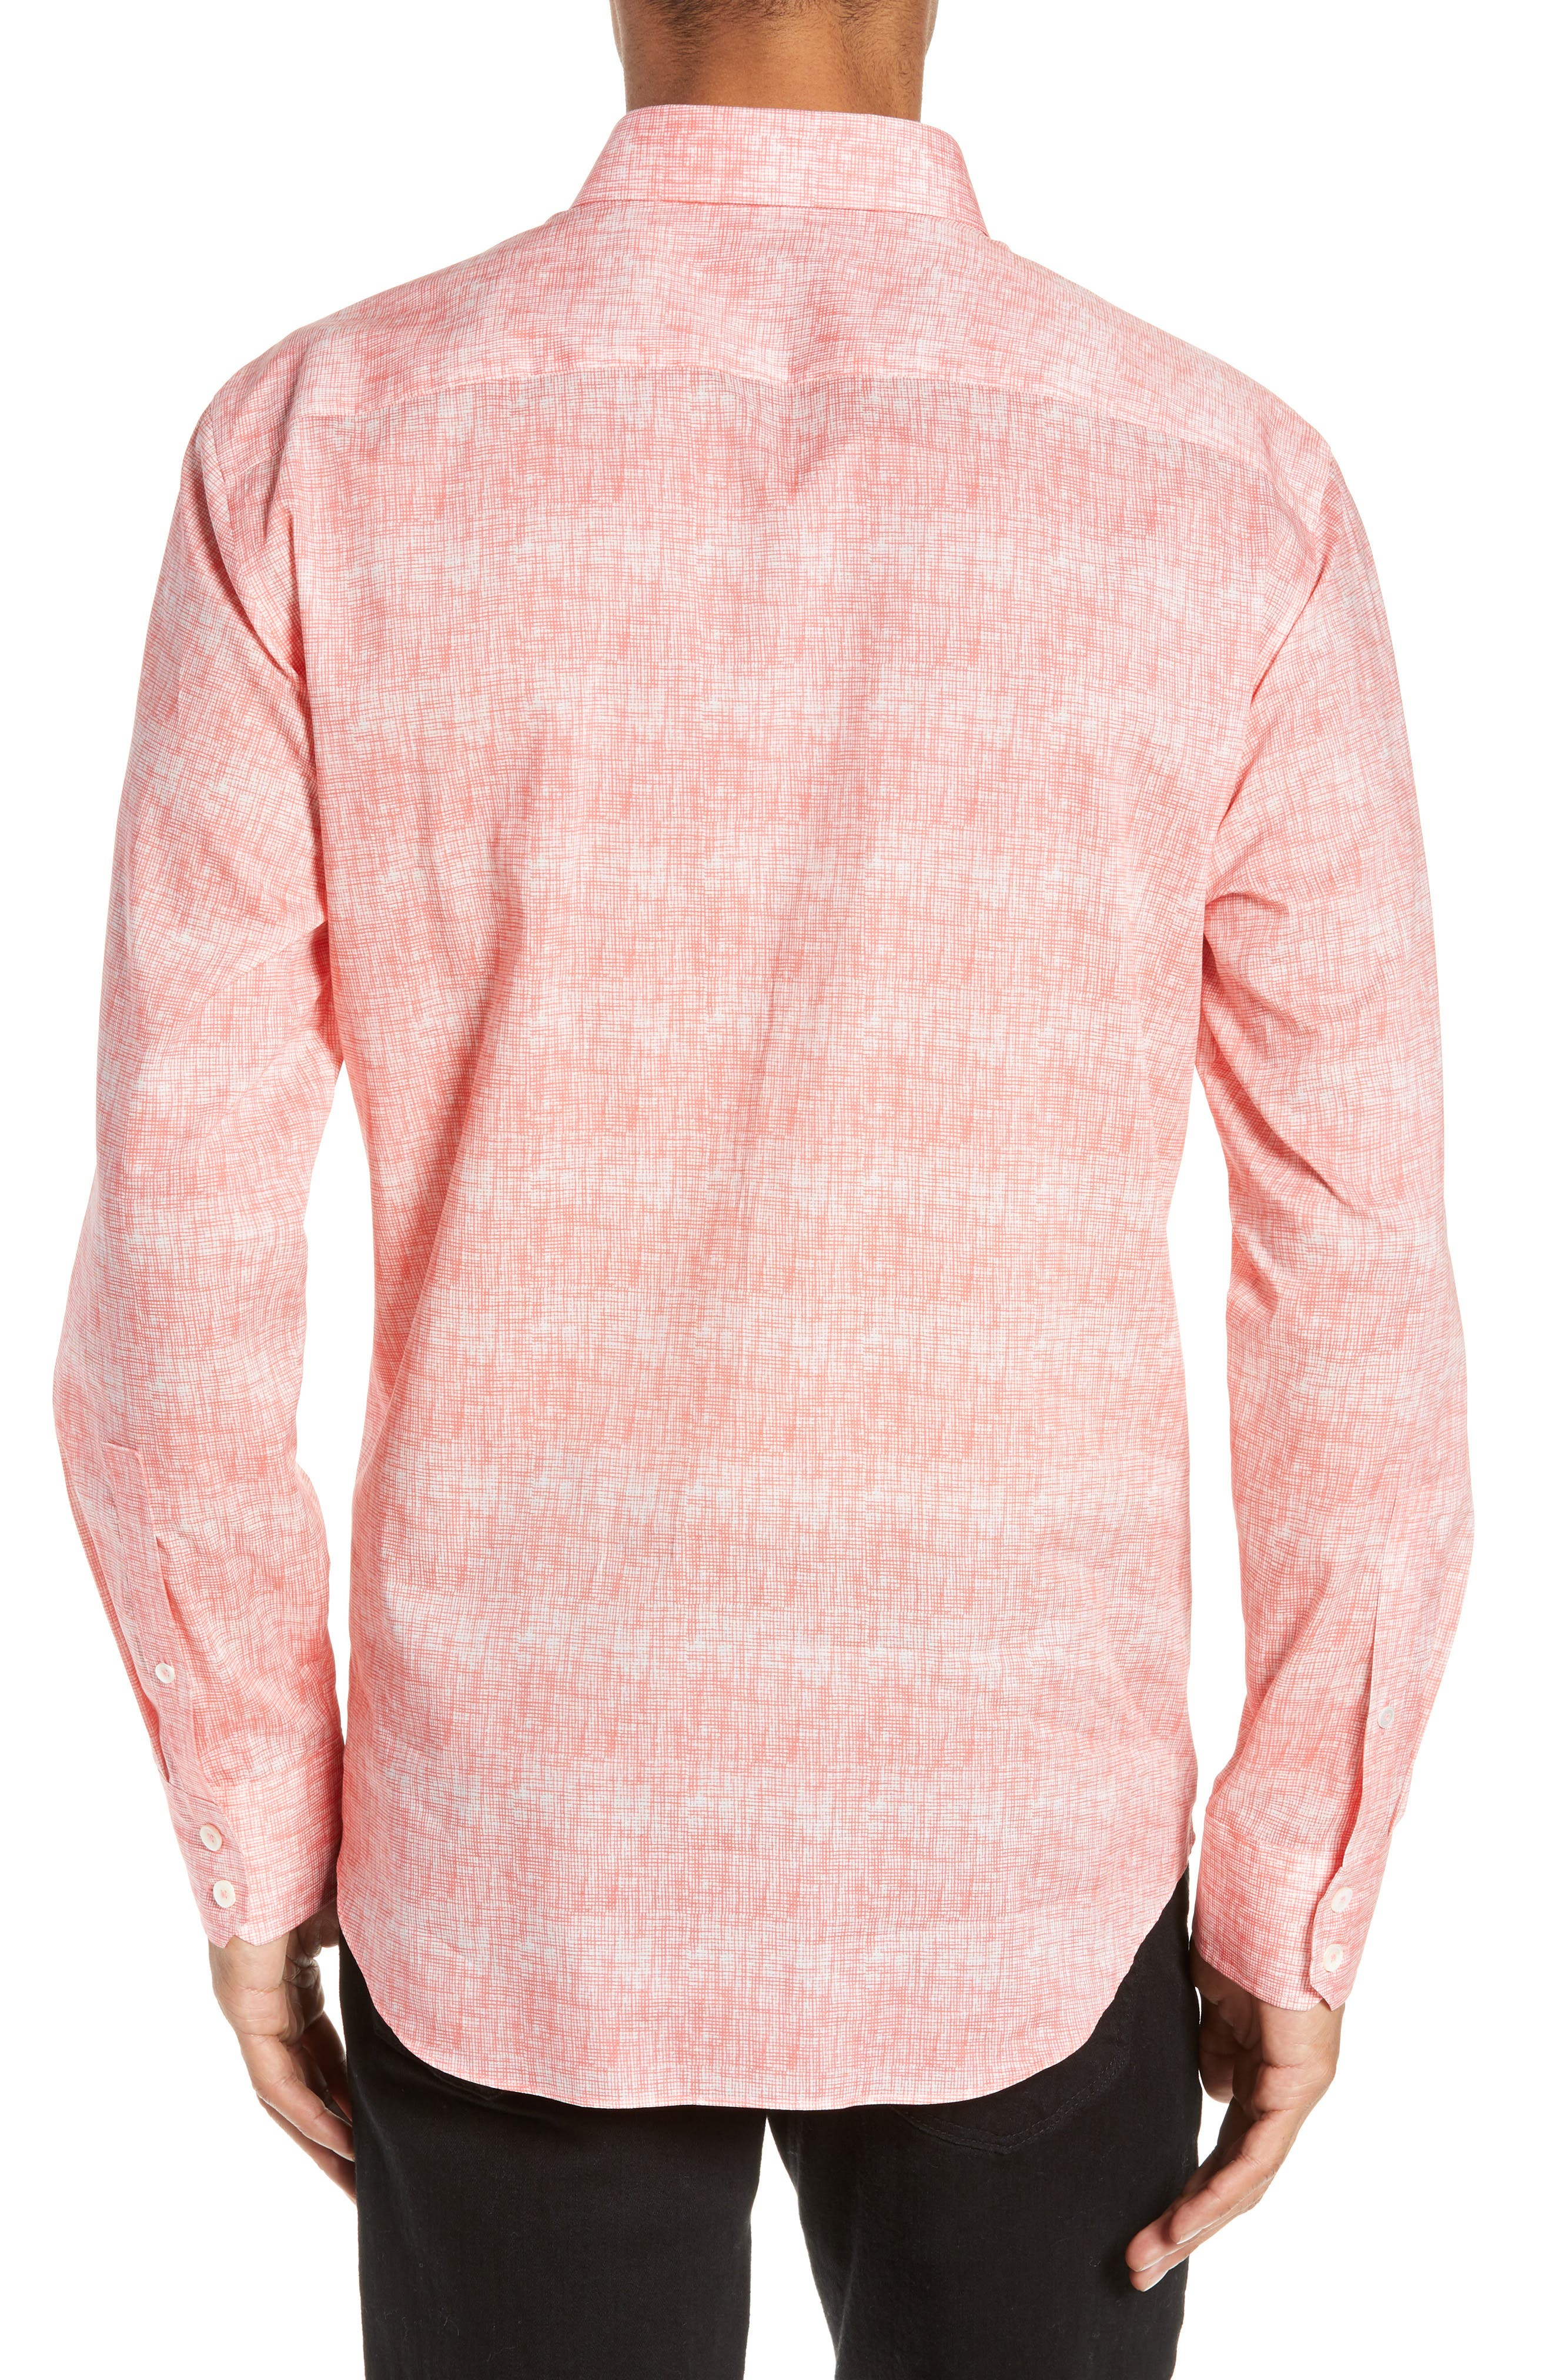 Griffin Regular Fit Sport Shirt,                             Alternate thumbnail 3, color,                             PINK